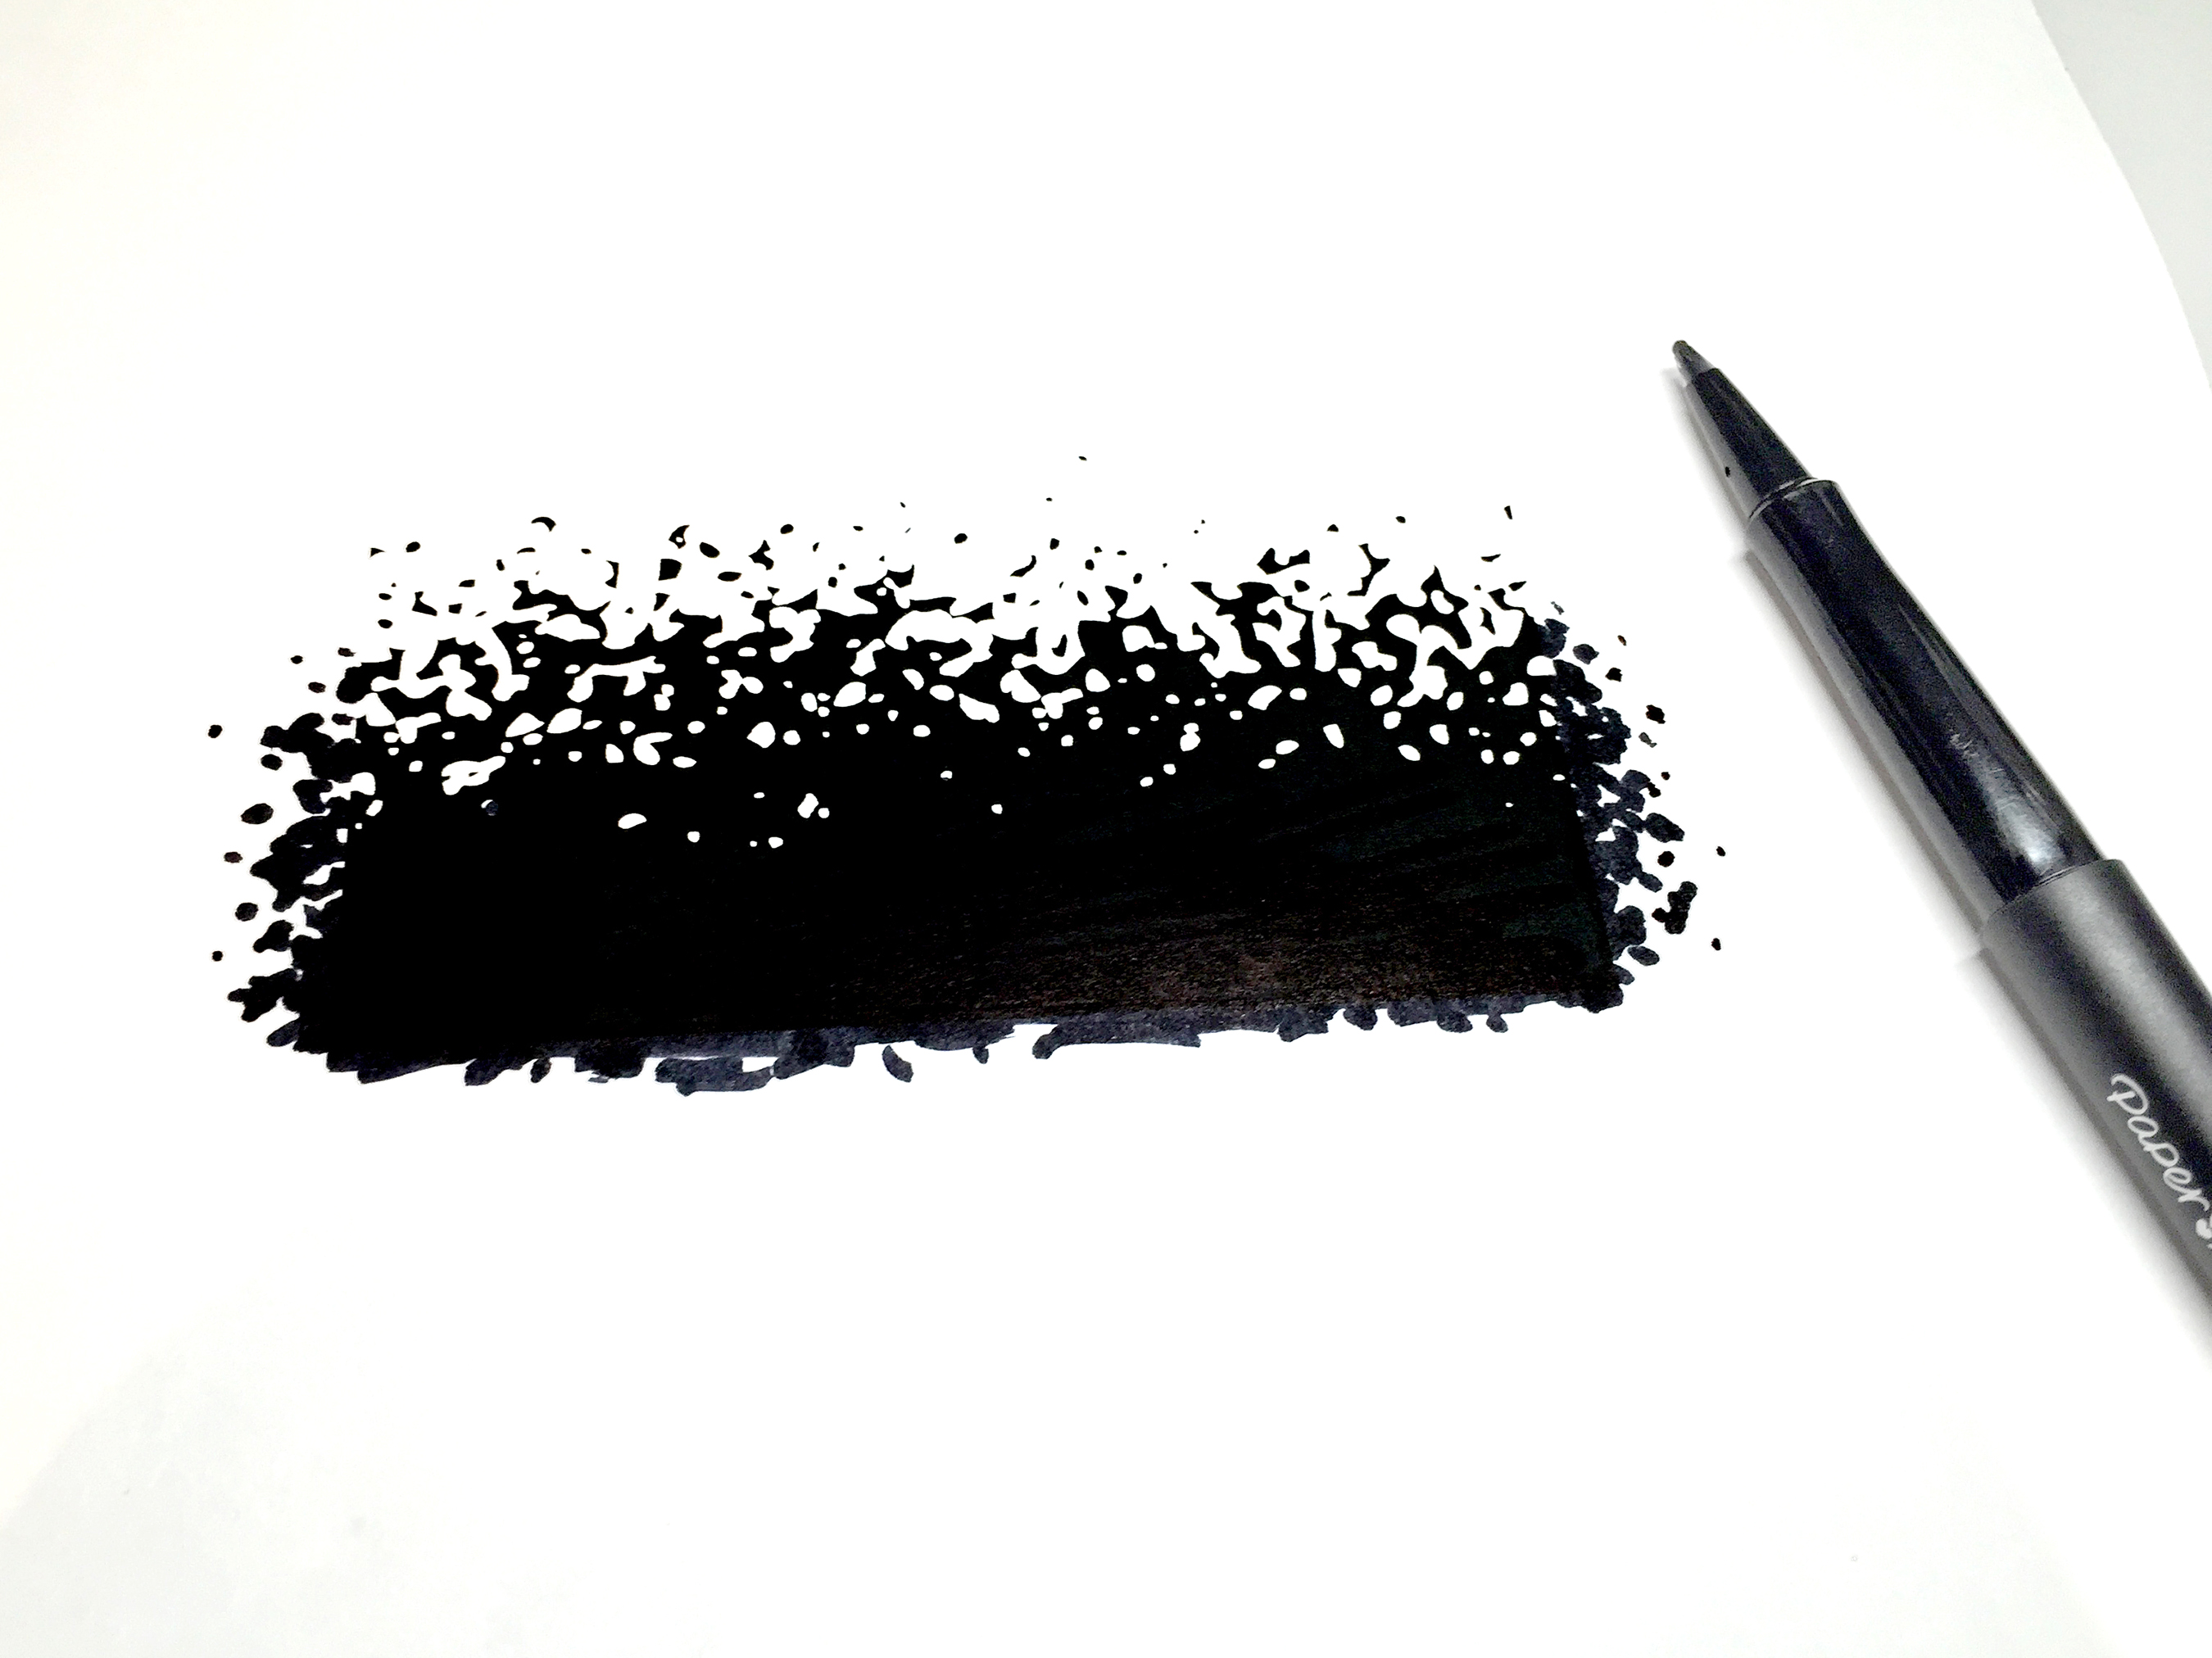 how to create brushes in photoshop cc 2015